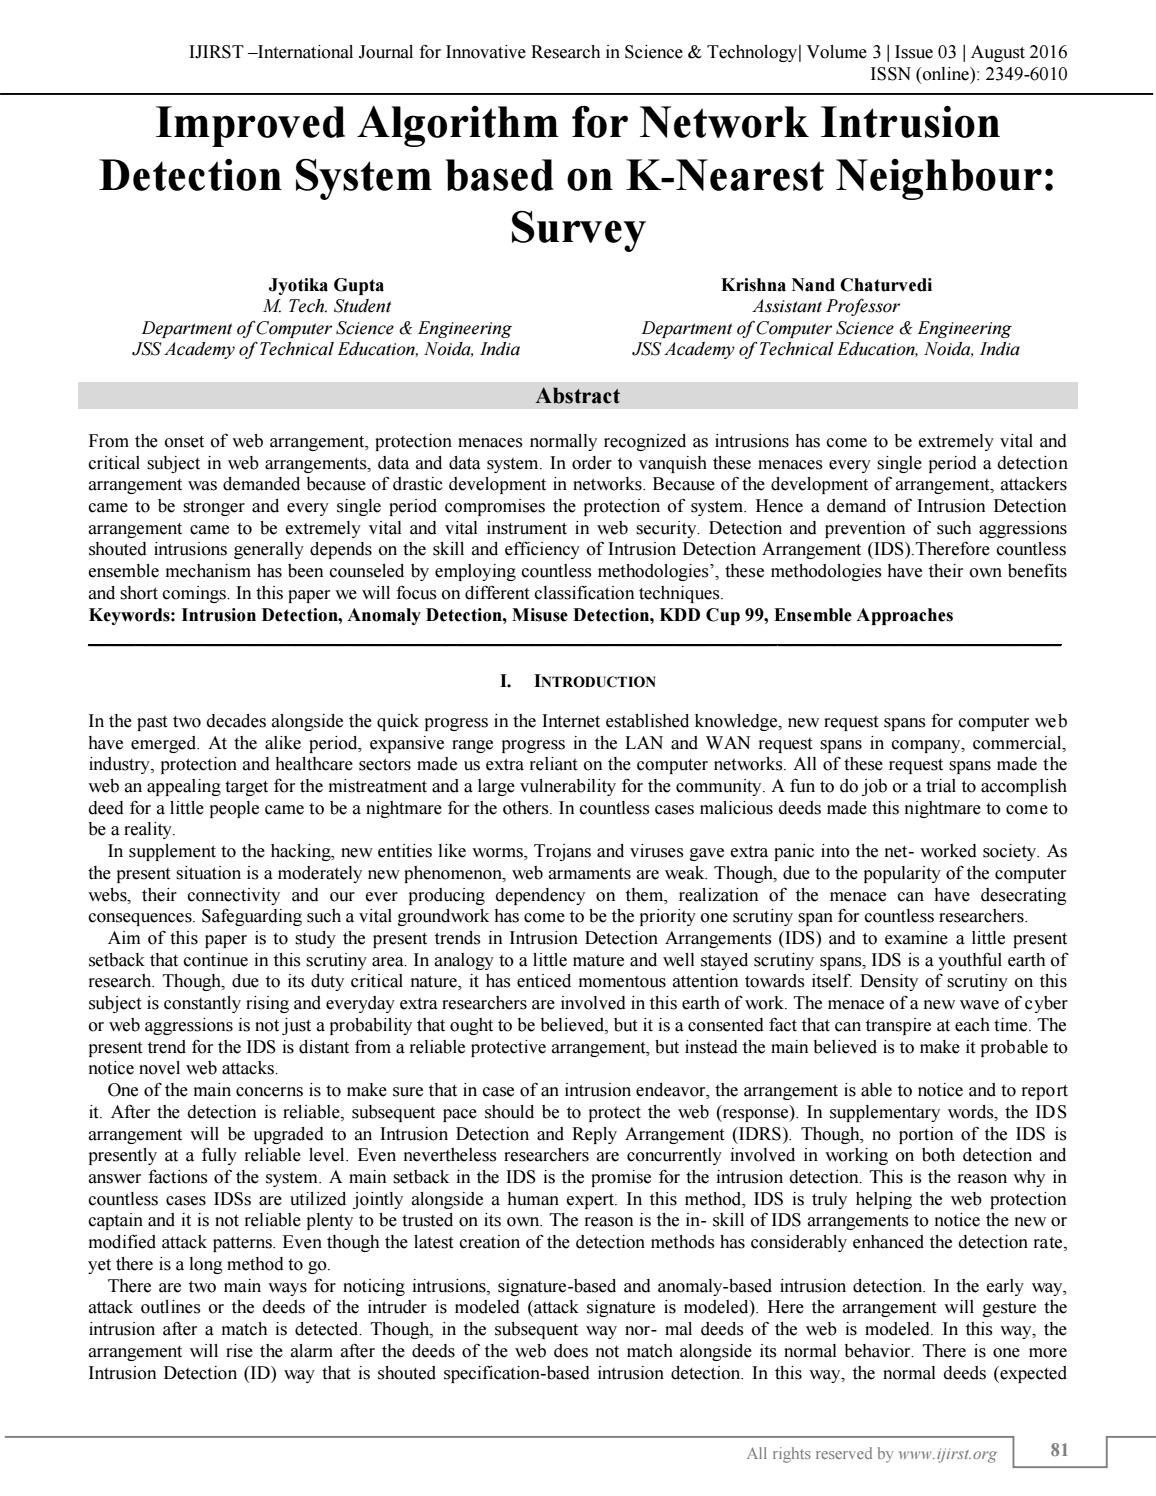 Improved Algorithm for Network Intrusion Detection System